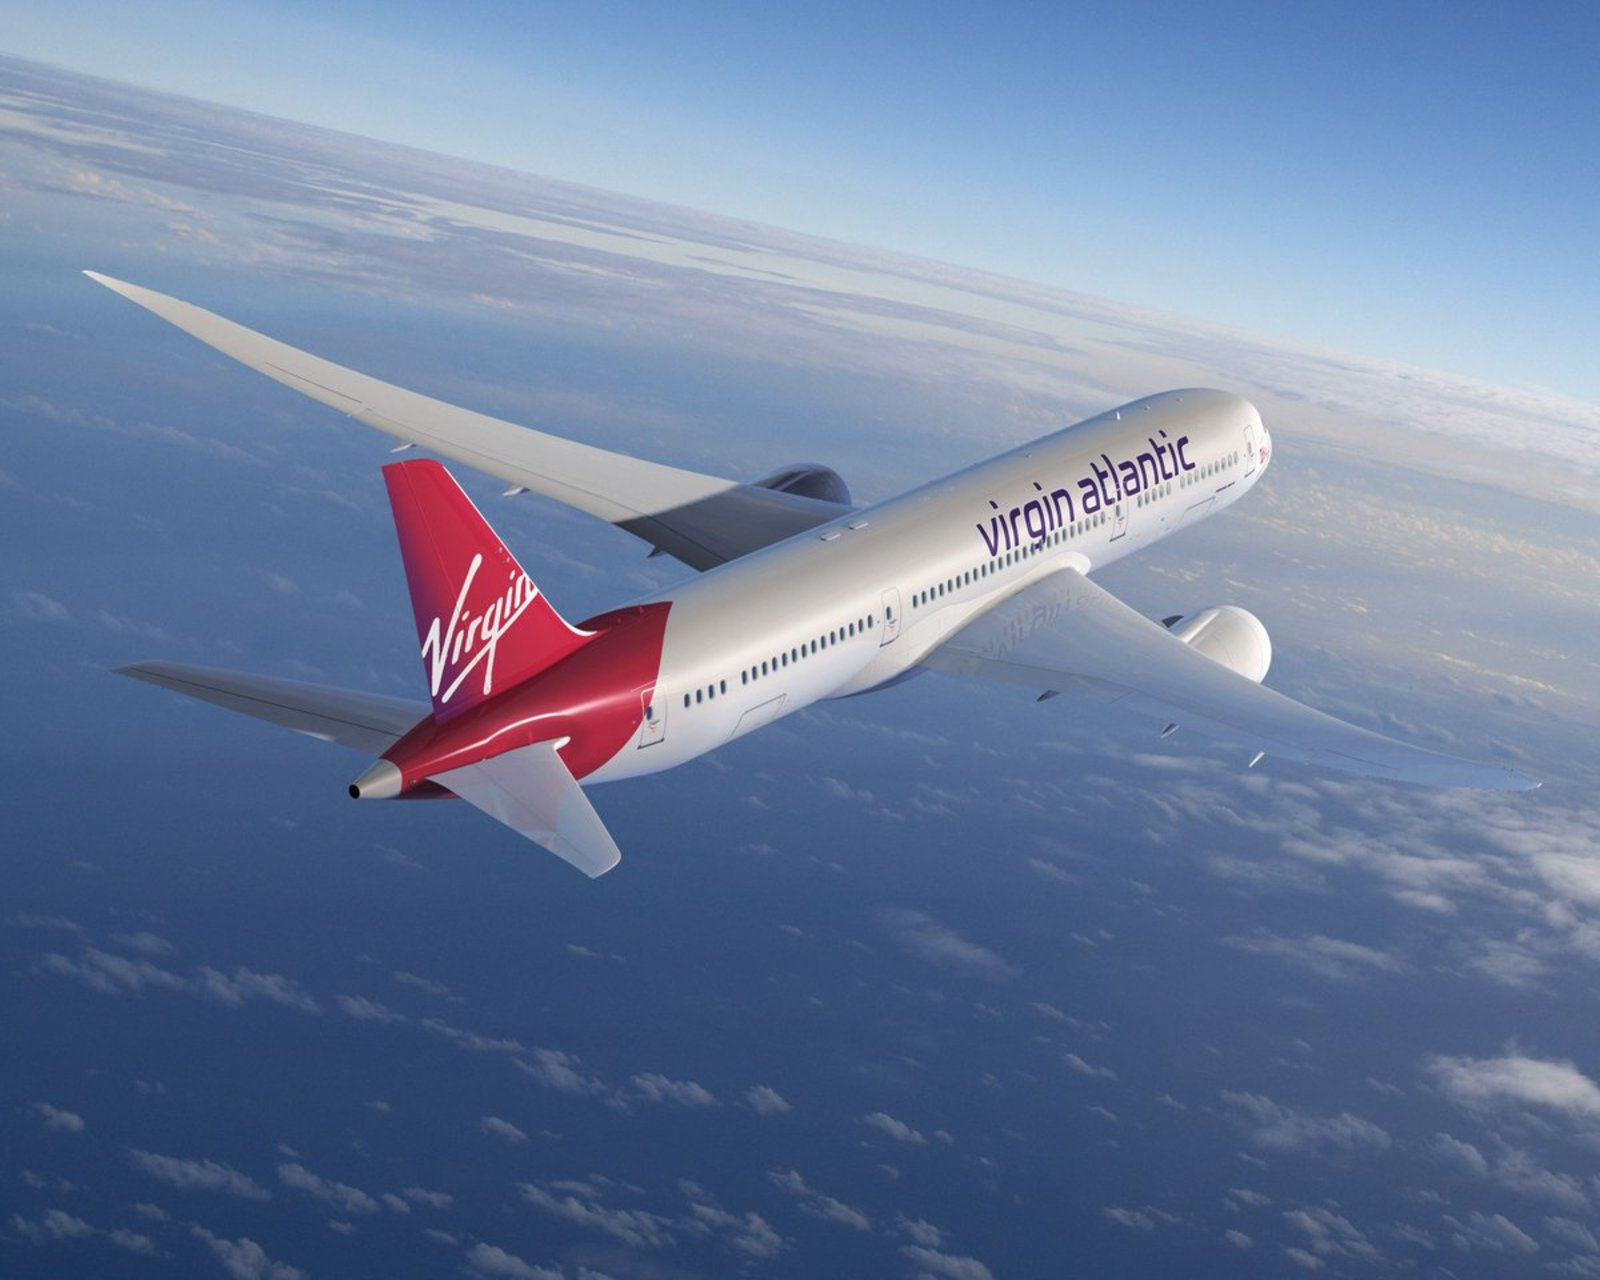 Virgin Atlantic rompe barrera del sonido